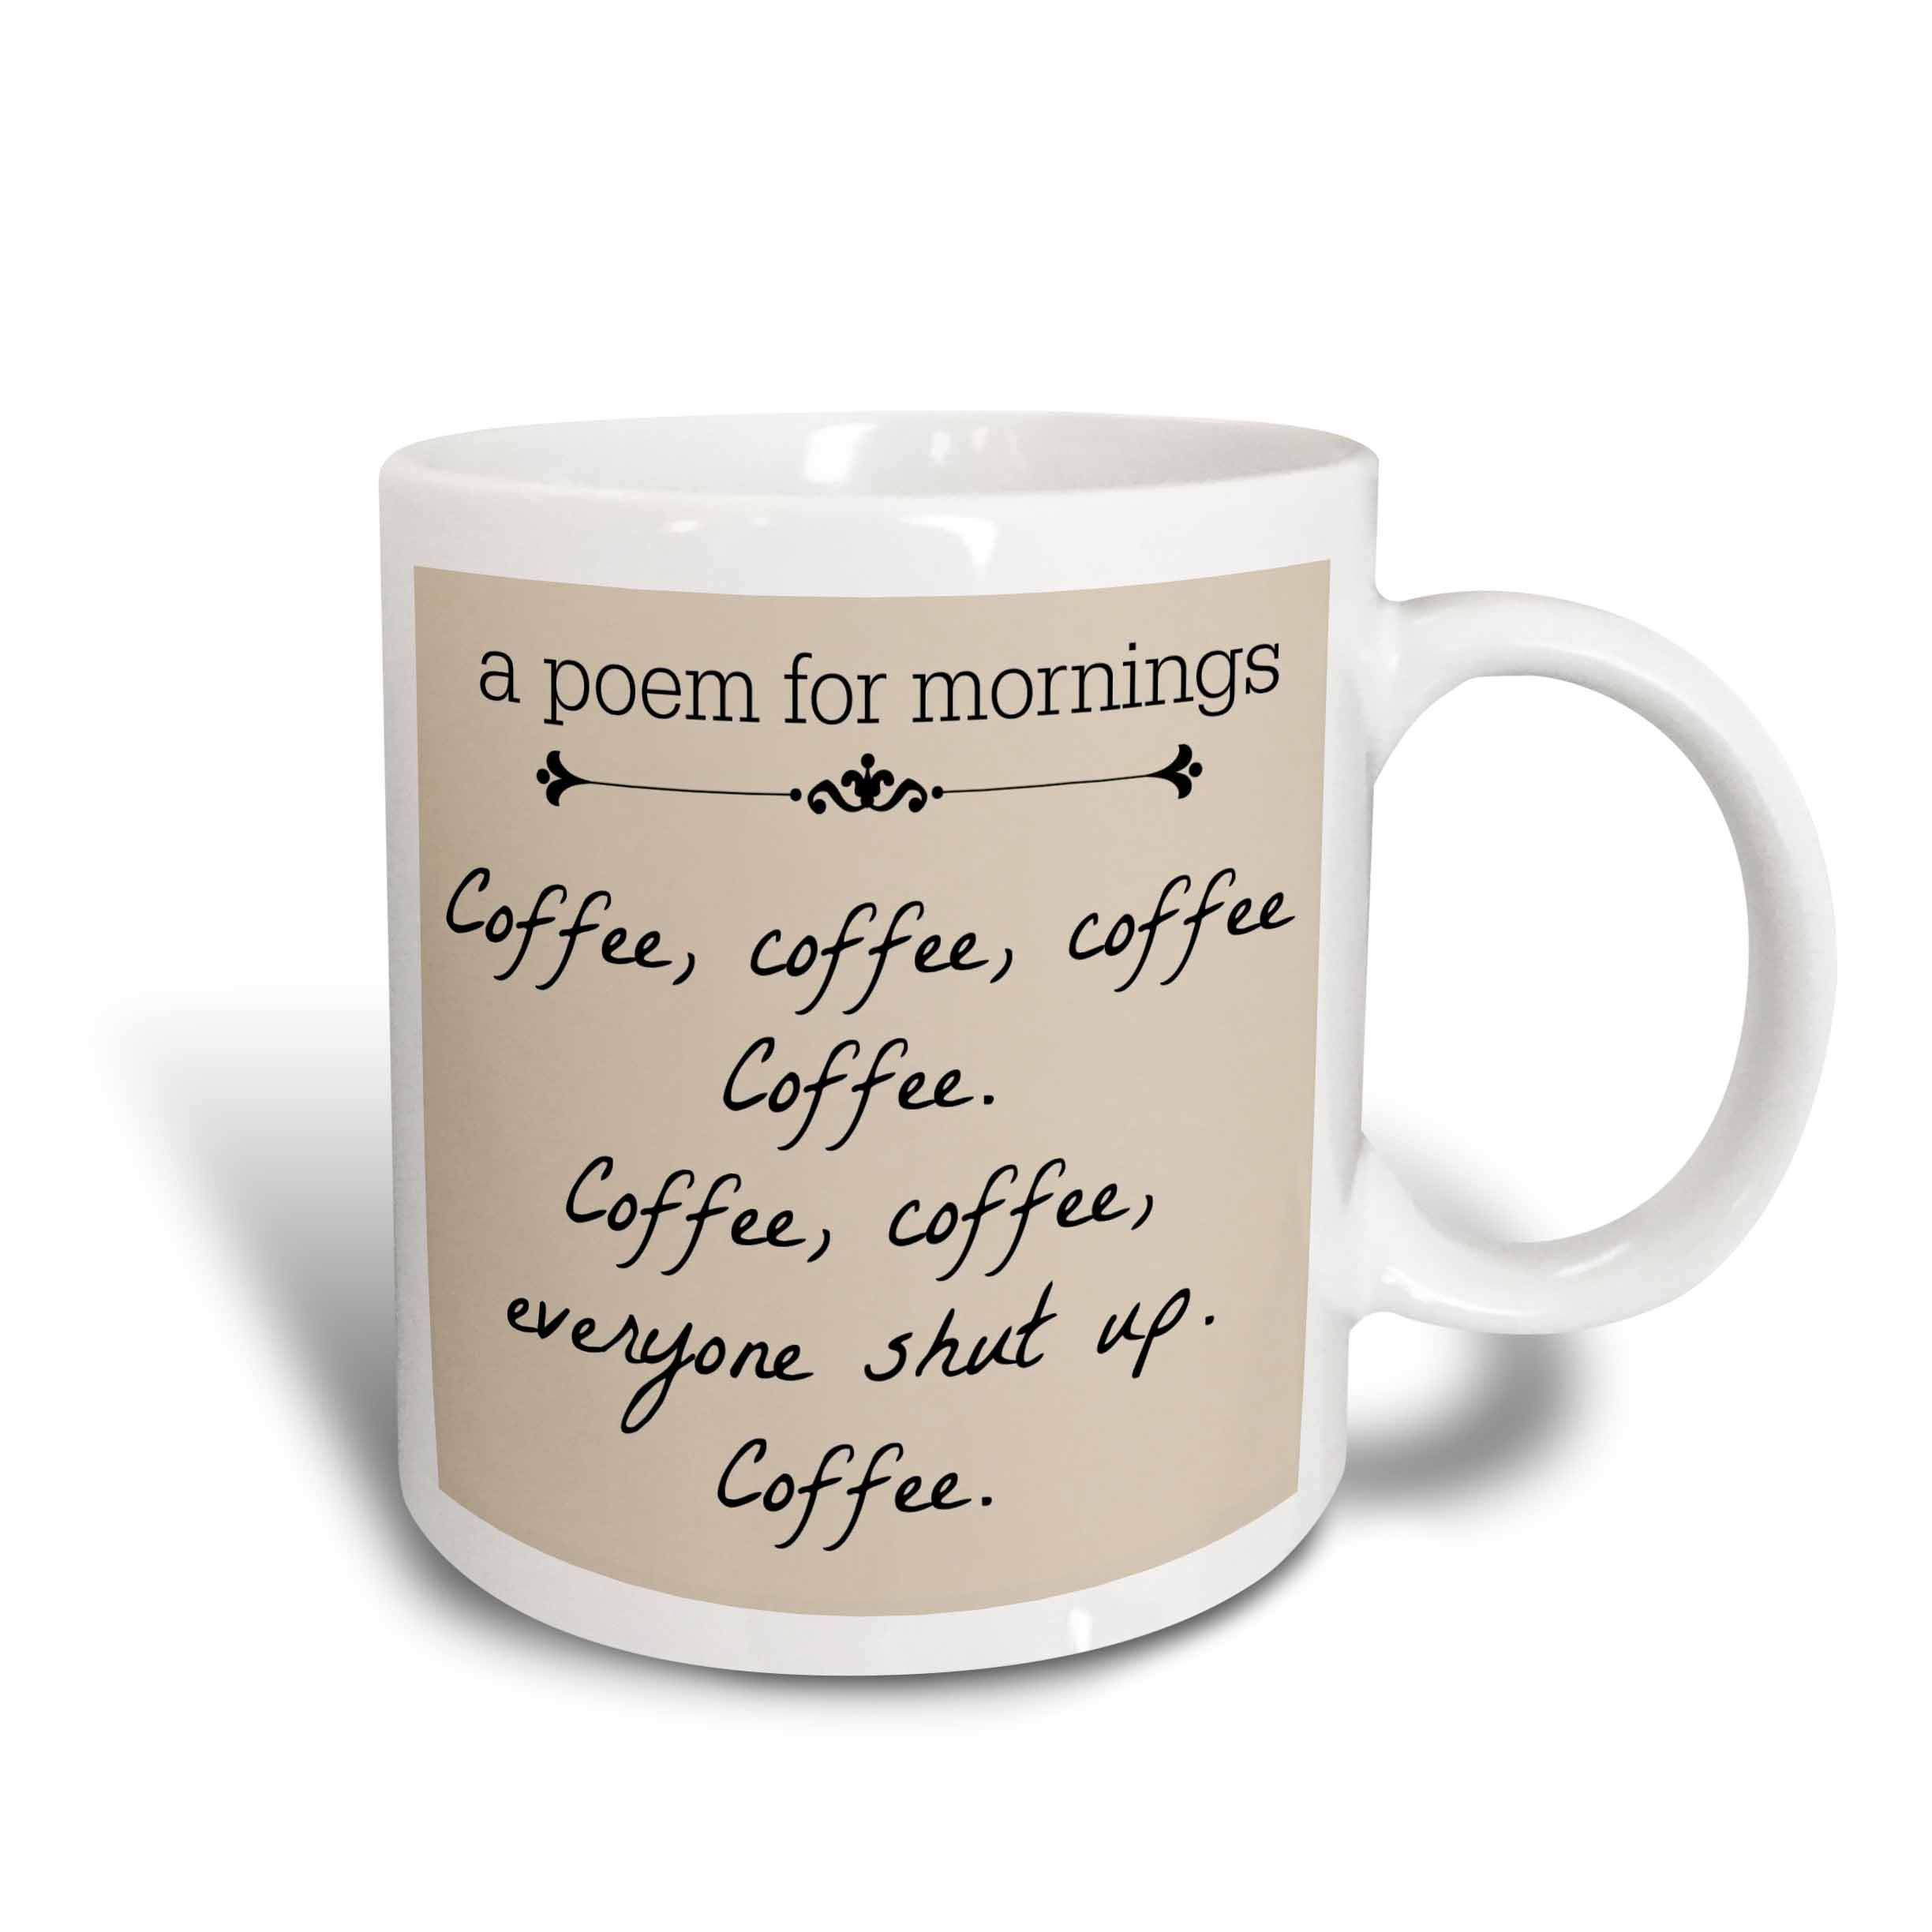 This is what I need!!!! A poem for mornings, coffee